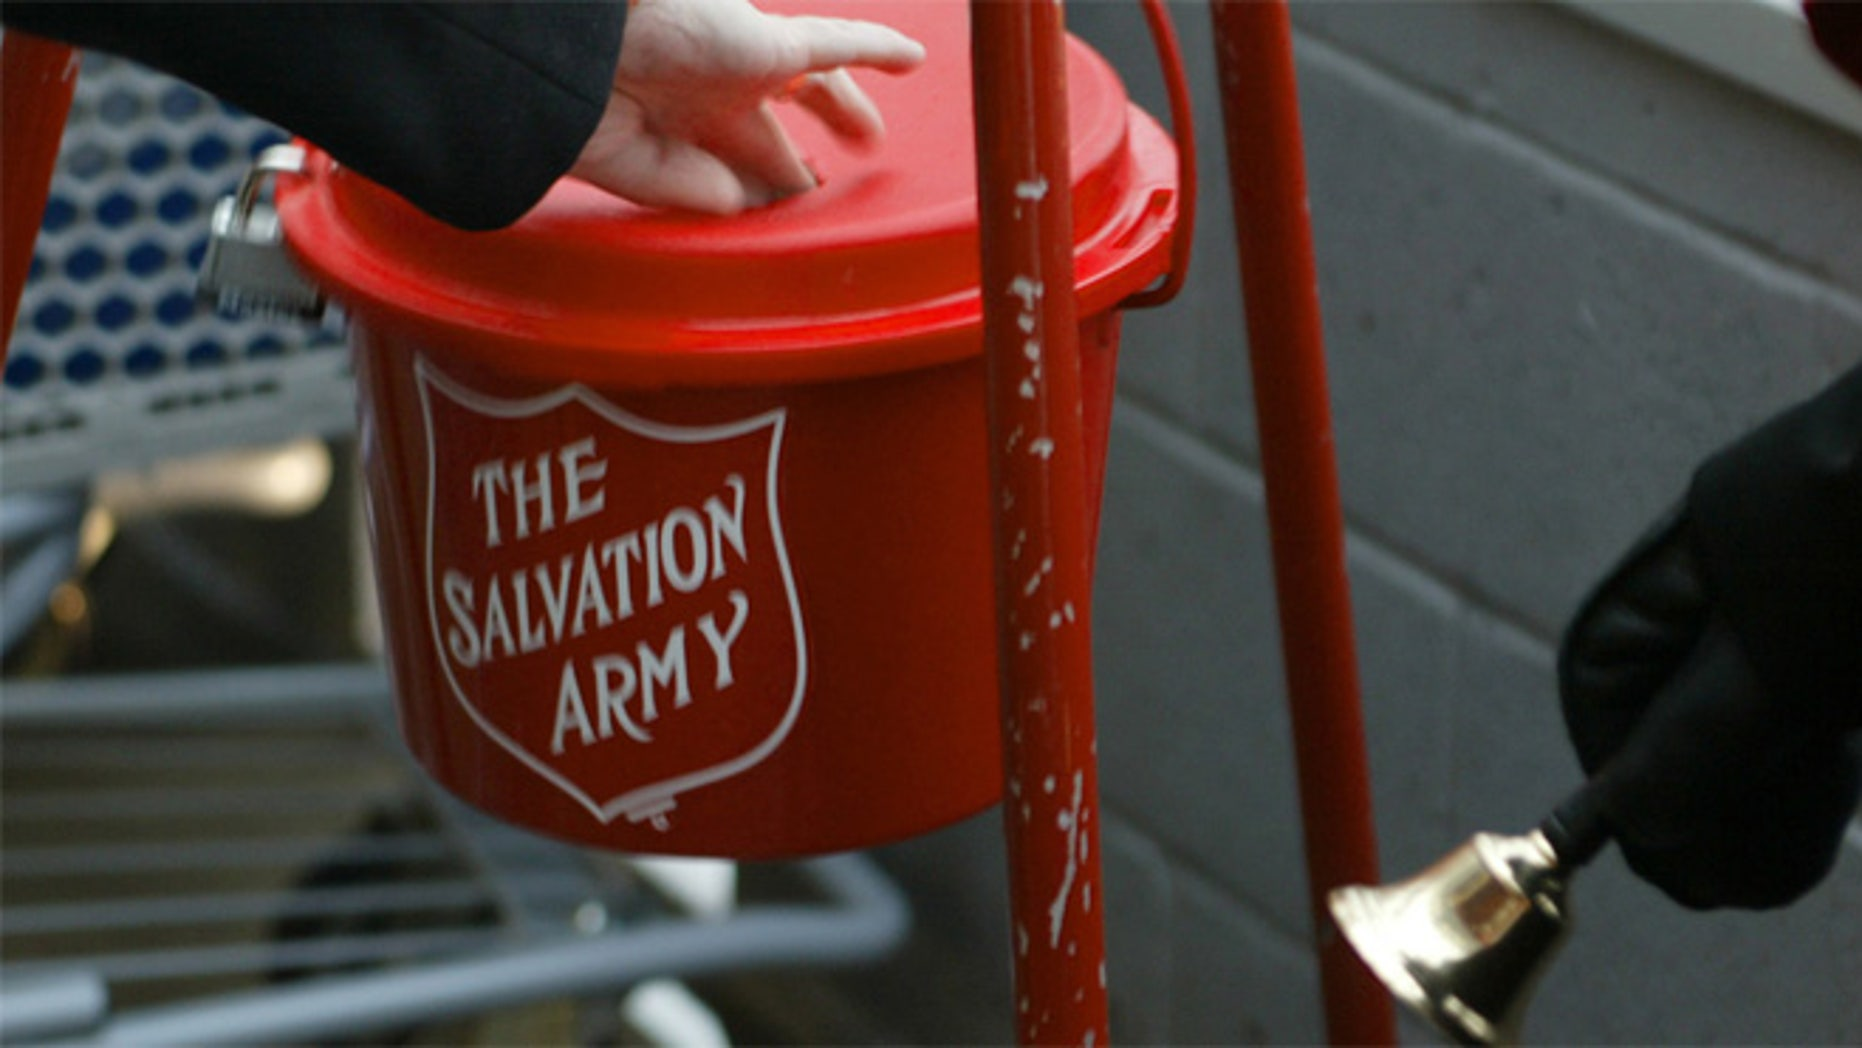 A mystery couple donated a half a million dollars to the Salvation Army.